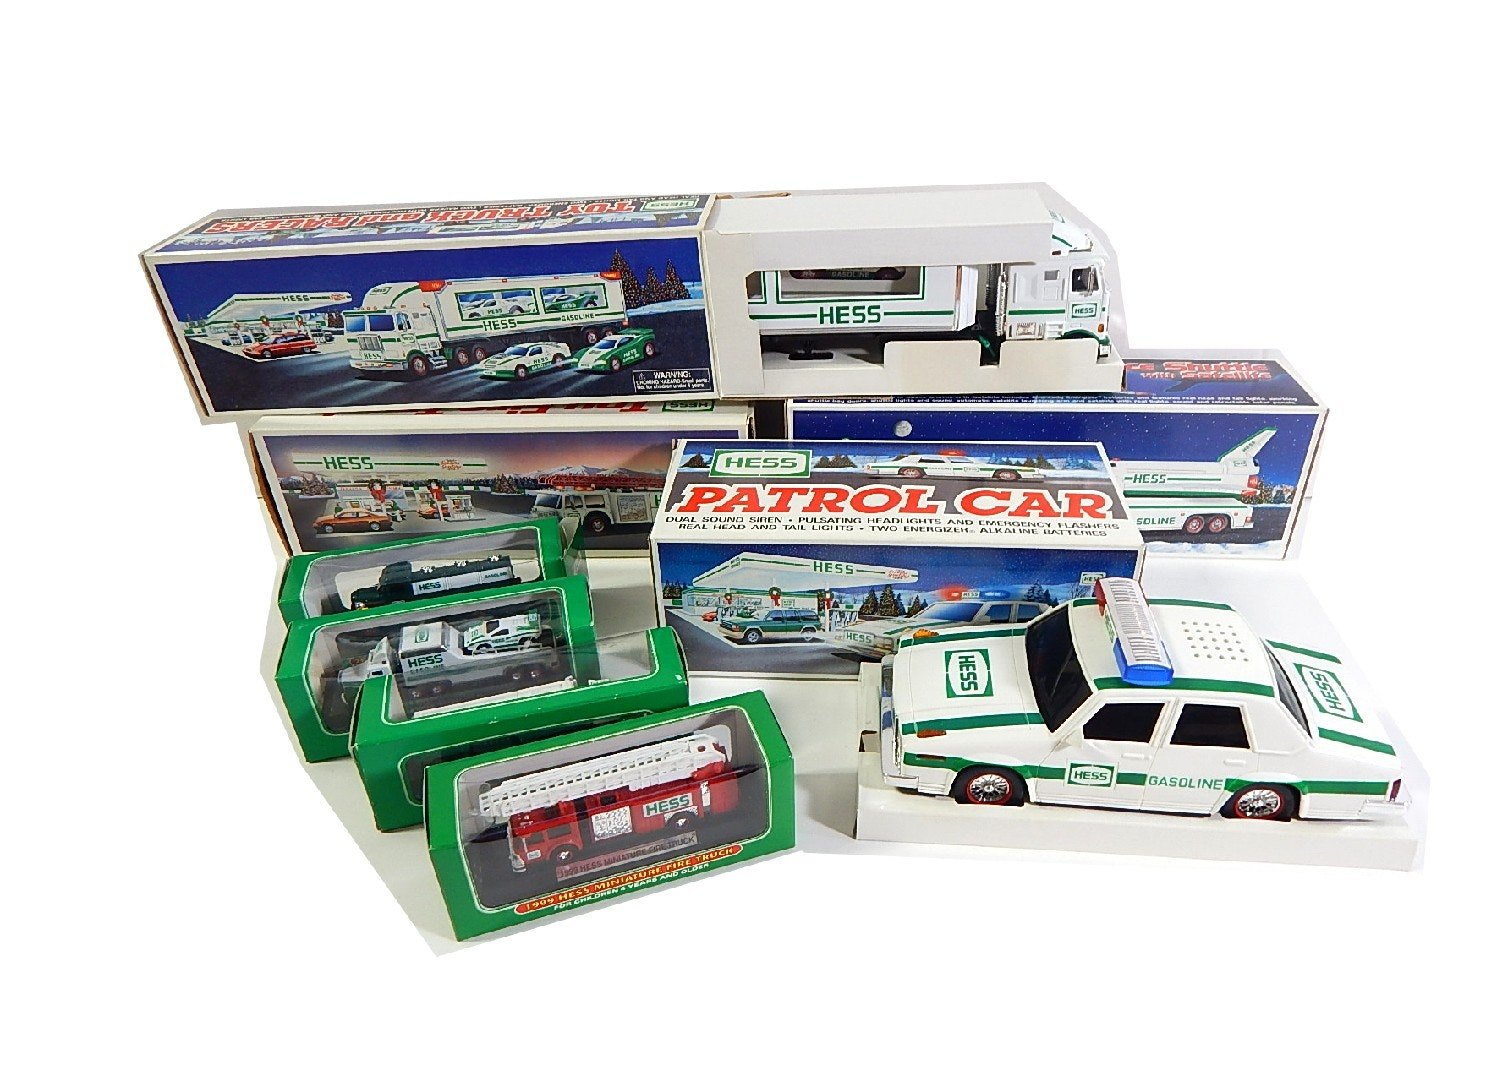 Hess Trucks and Cars - New in Boxes